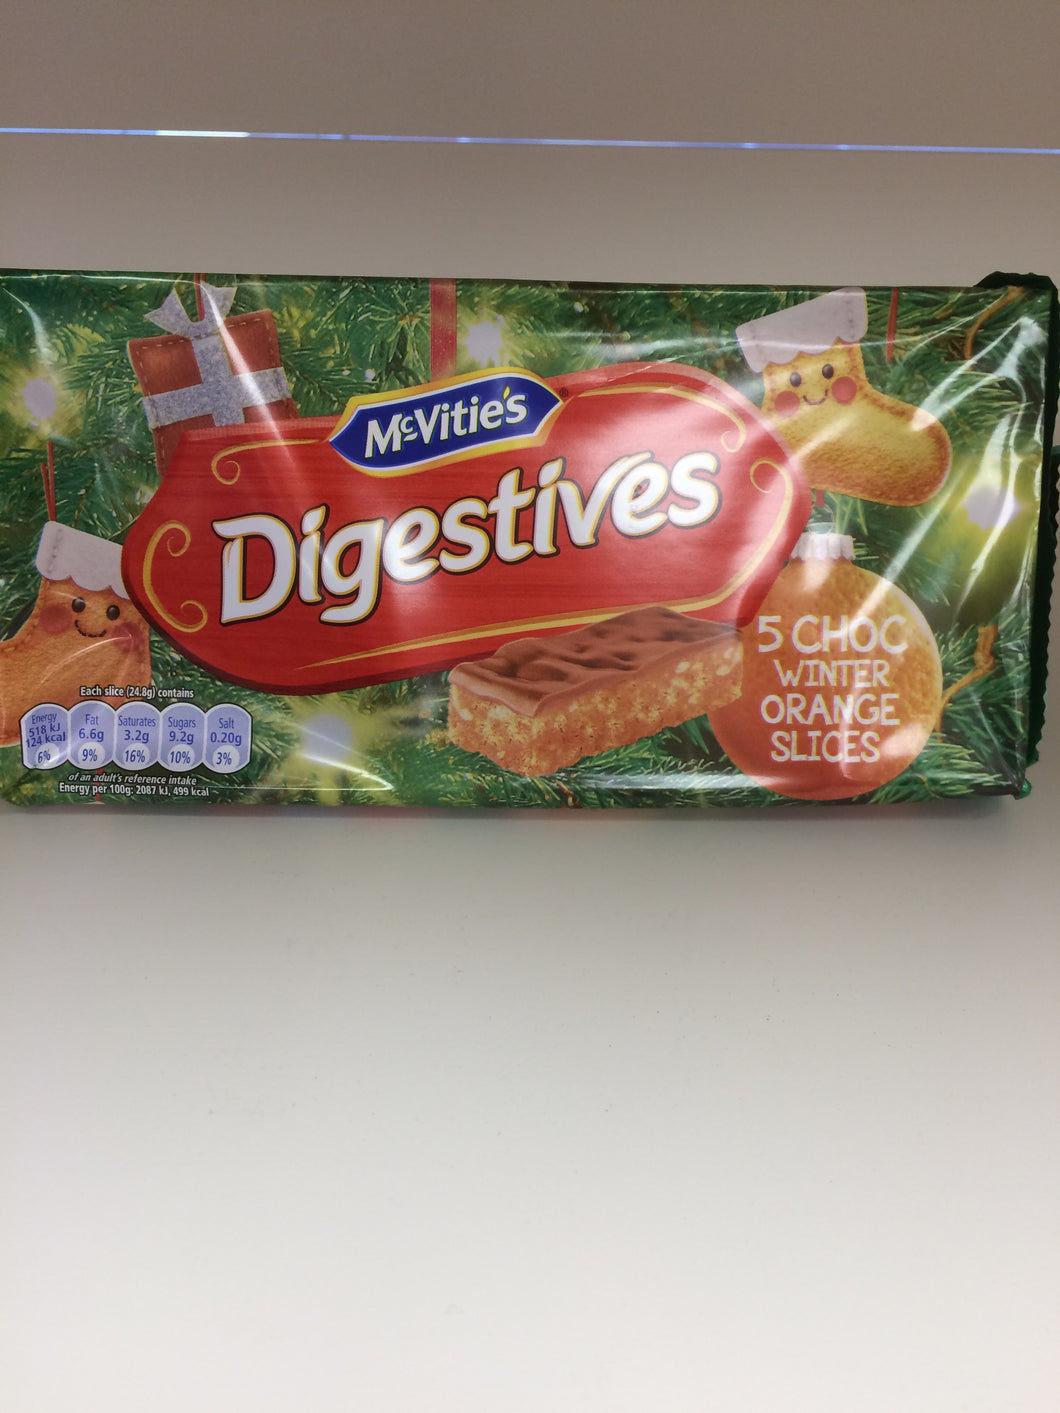 McVities Digestive Choc Winter Orange Slices 5 pack